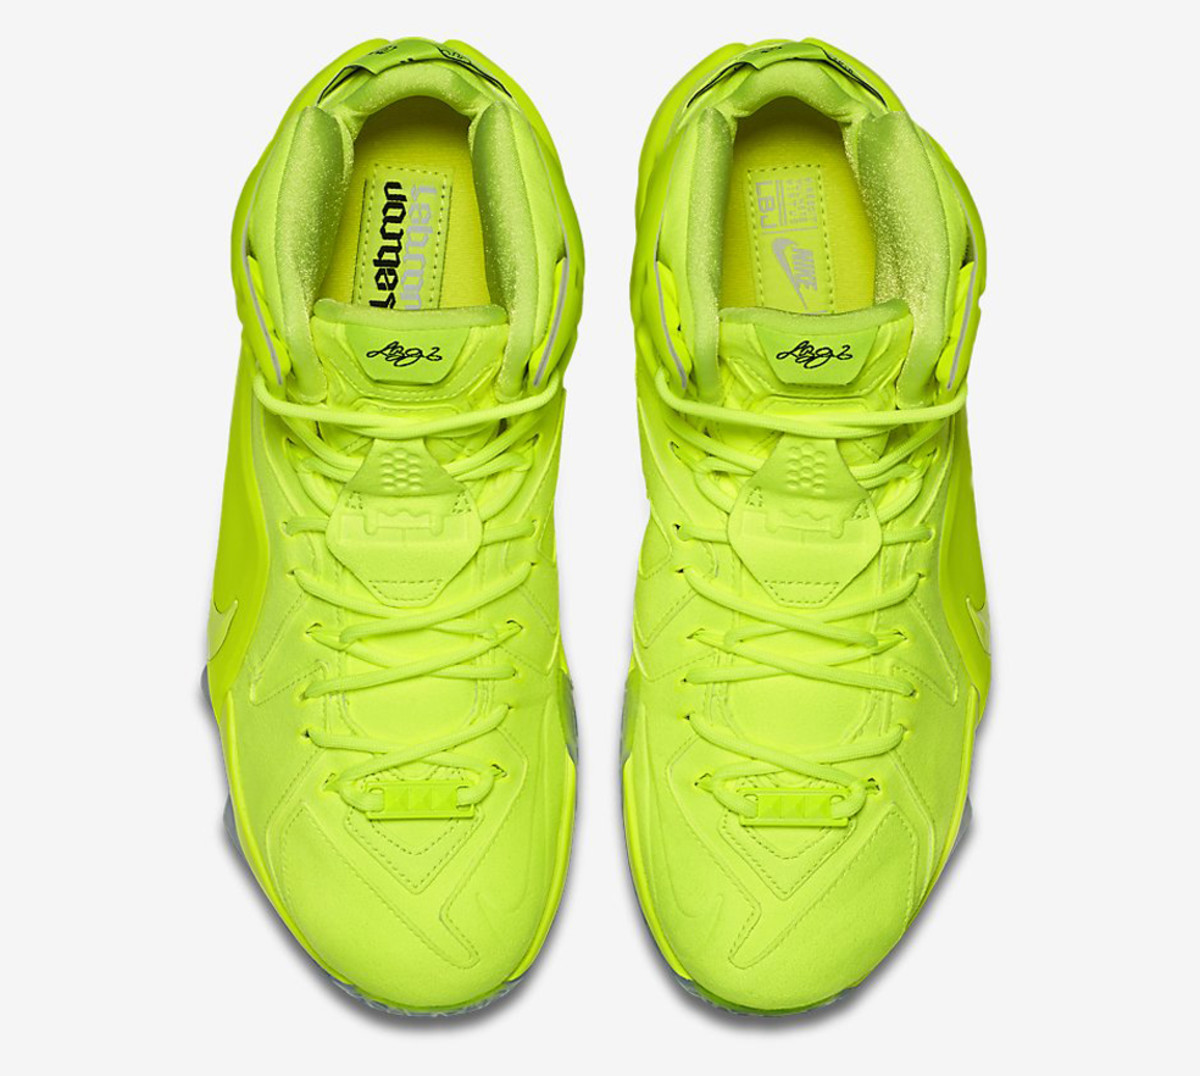 nike-lebron-12-tennis-ball-02